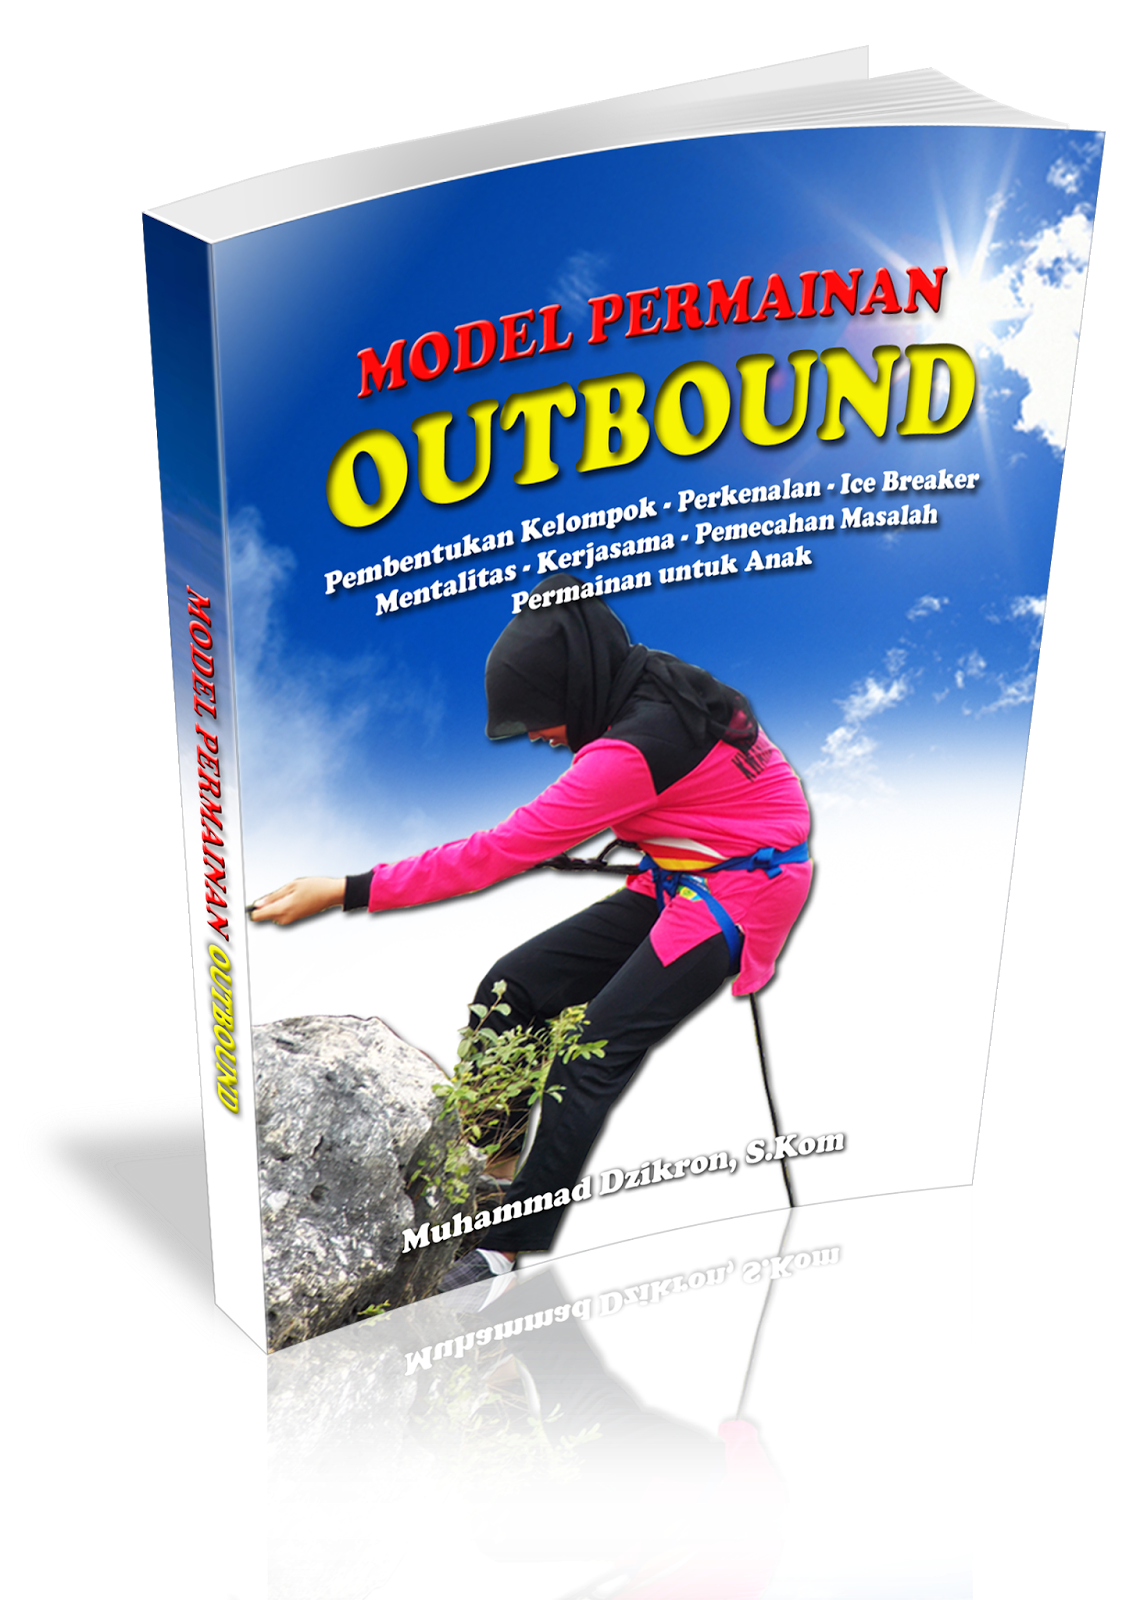 http://www.gkhwklaten.org/2014/02/buku-model-permainan-outbound.html